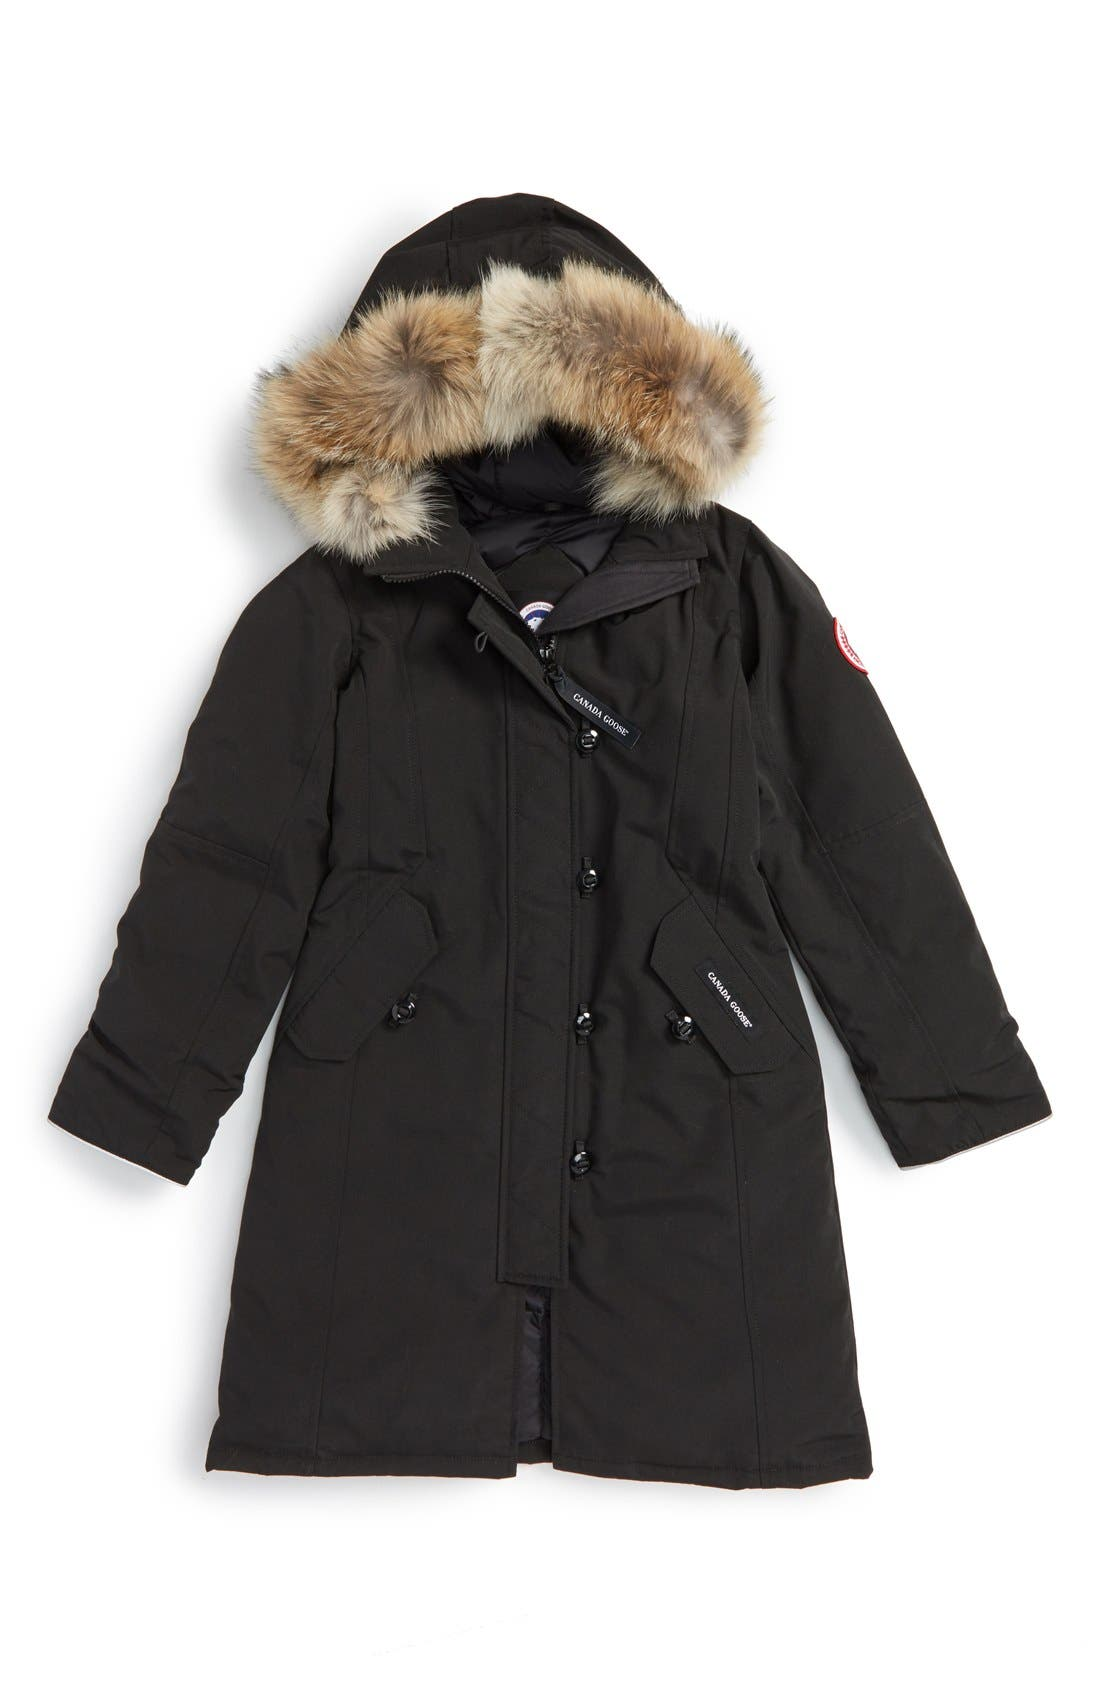 'Brittania' Down Parka with Genuine Coyote Fur Trim,                             Main thumbnail 1, color,                             BLACK